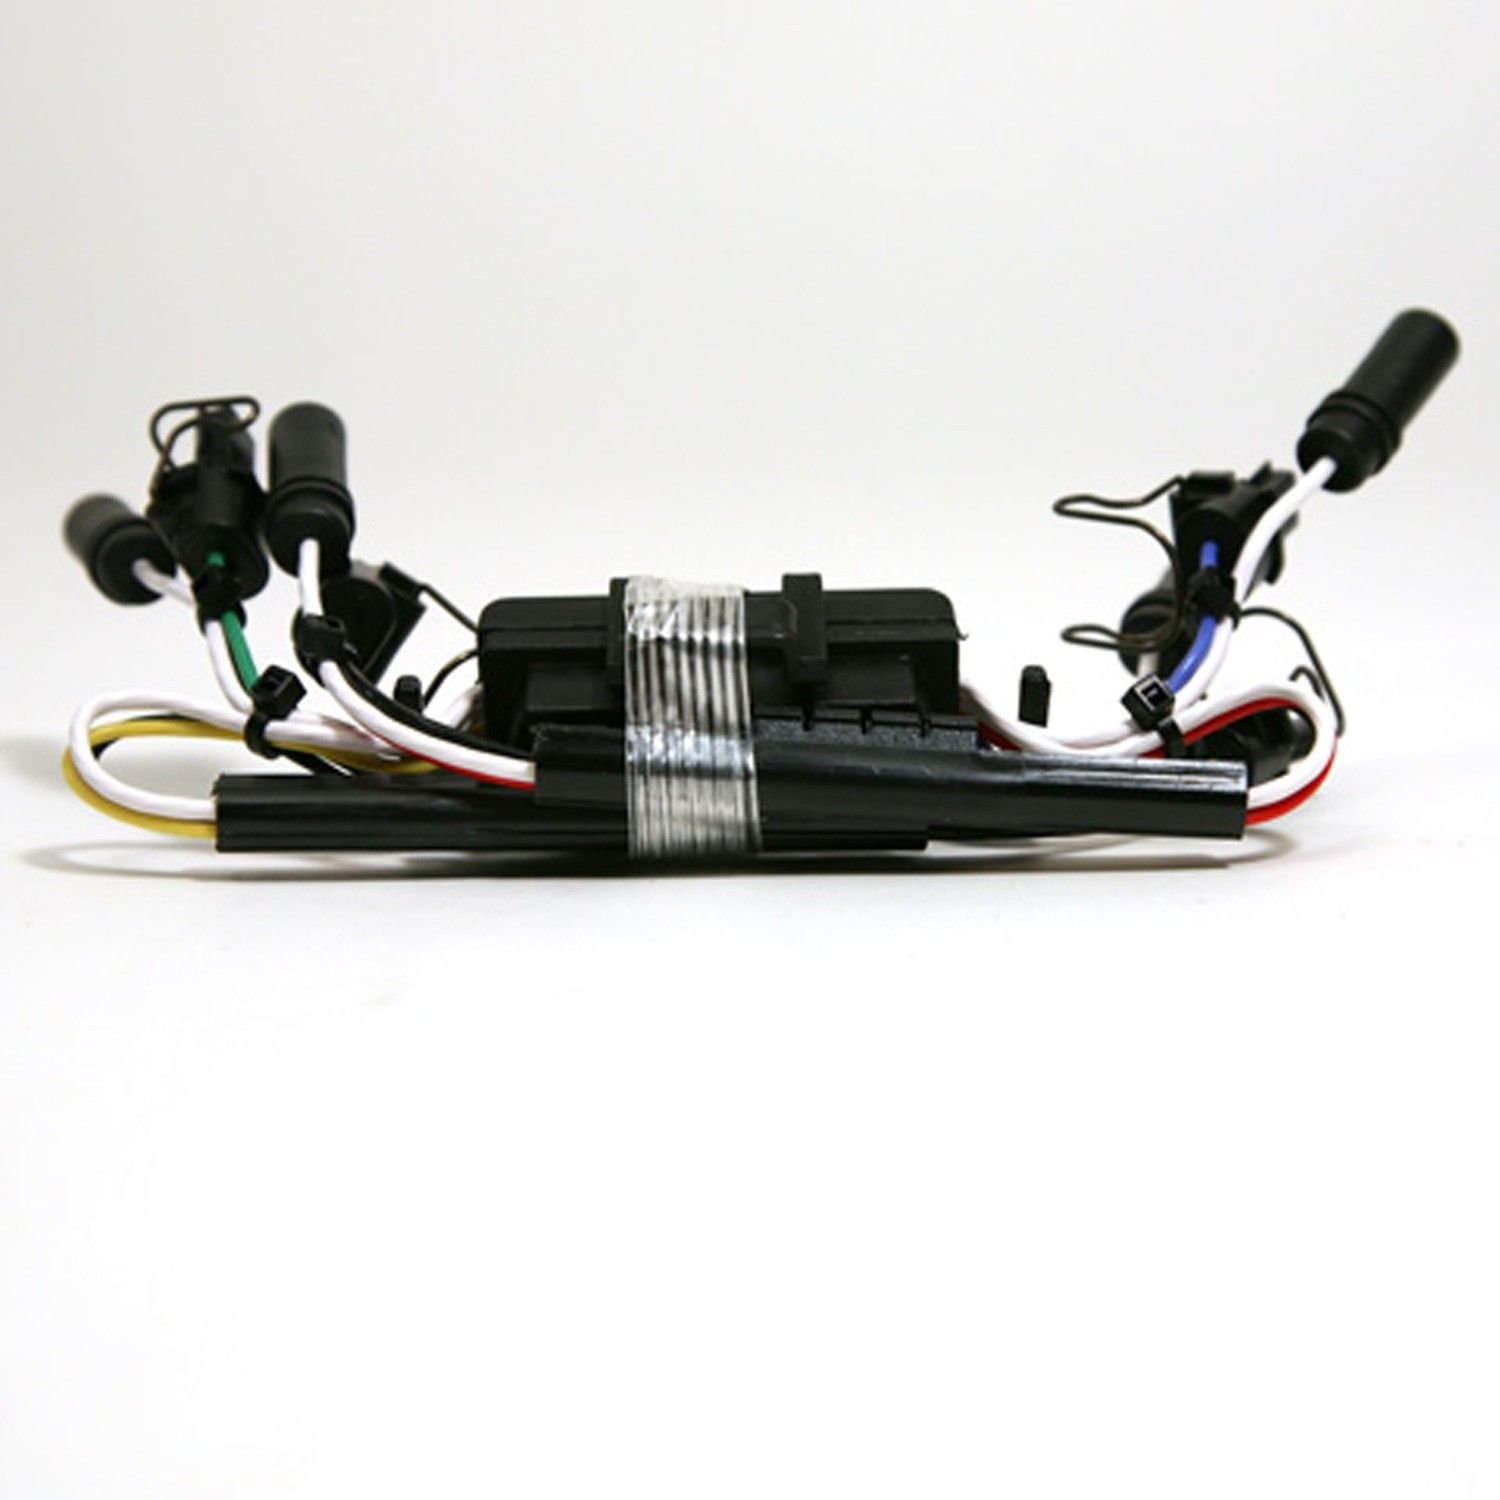 Ford Excursion Diesel Glow Plug Wiring Harness Replacement Delphi 2002 8 Cyl 73l Htp119 Actual Oe Part